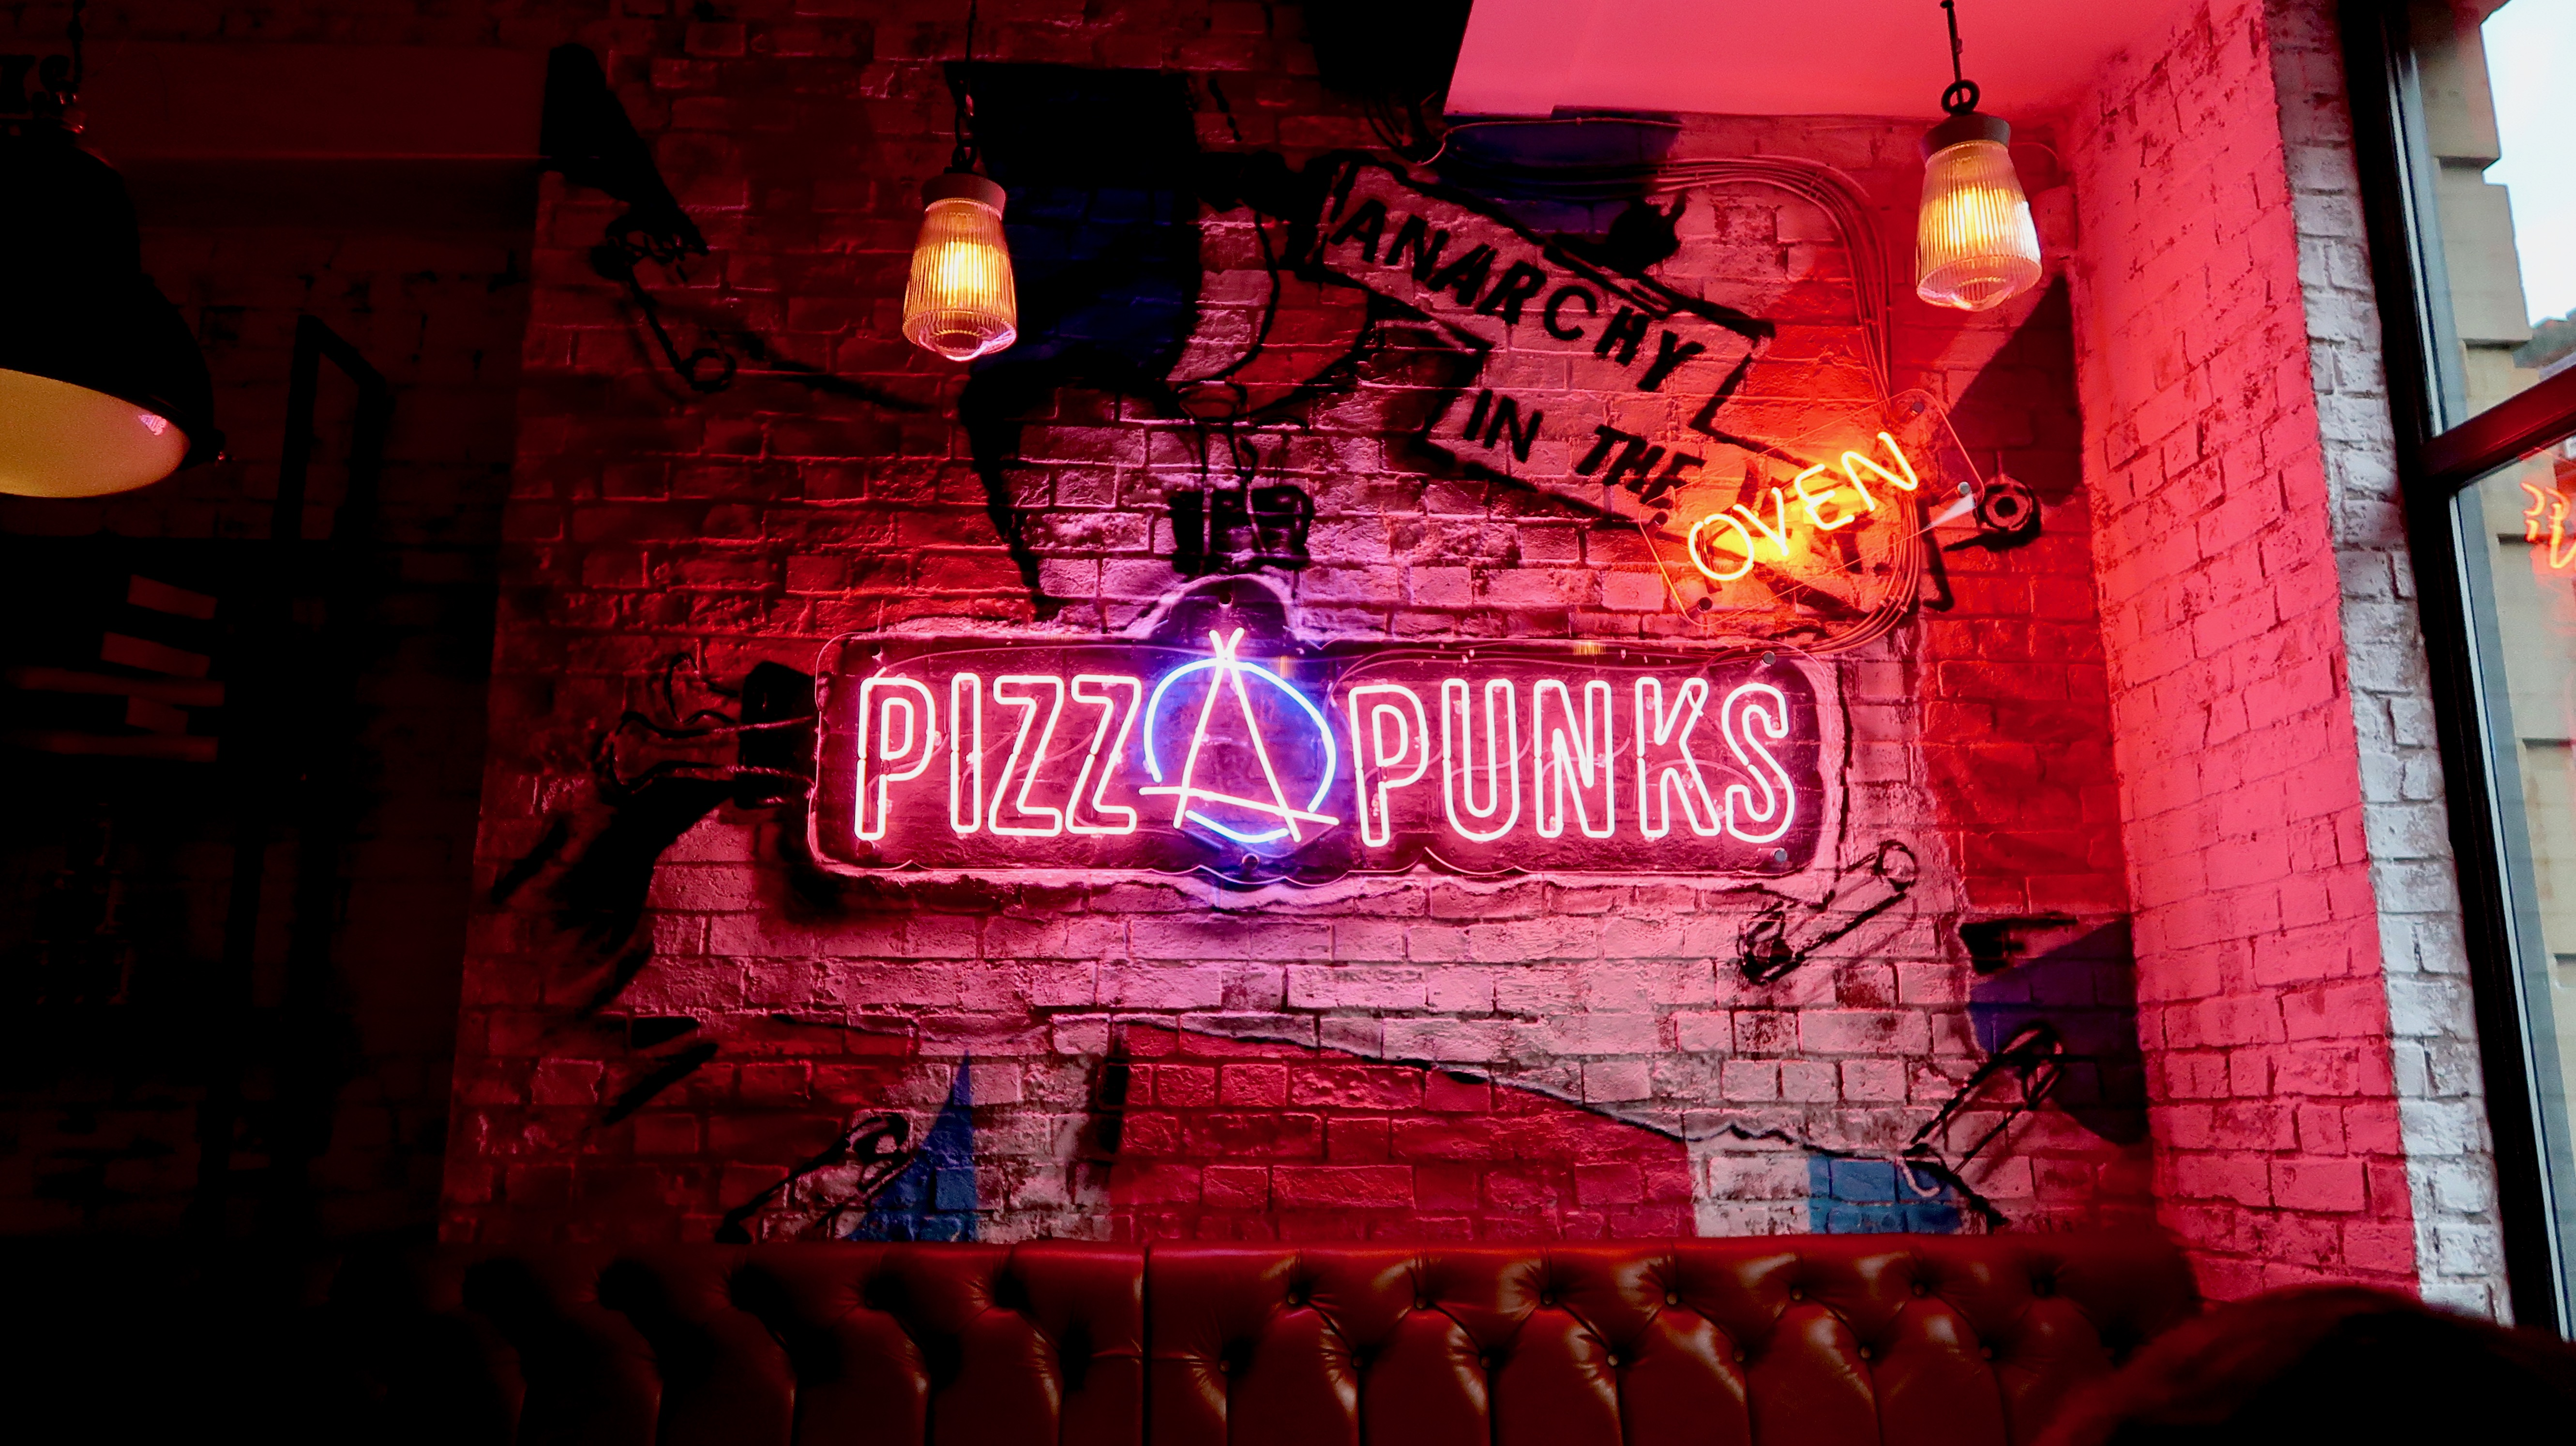 Pizza Punks arrives in Party Central for first England Location 2